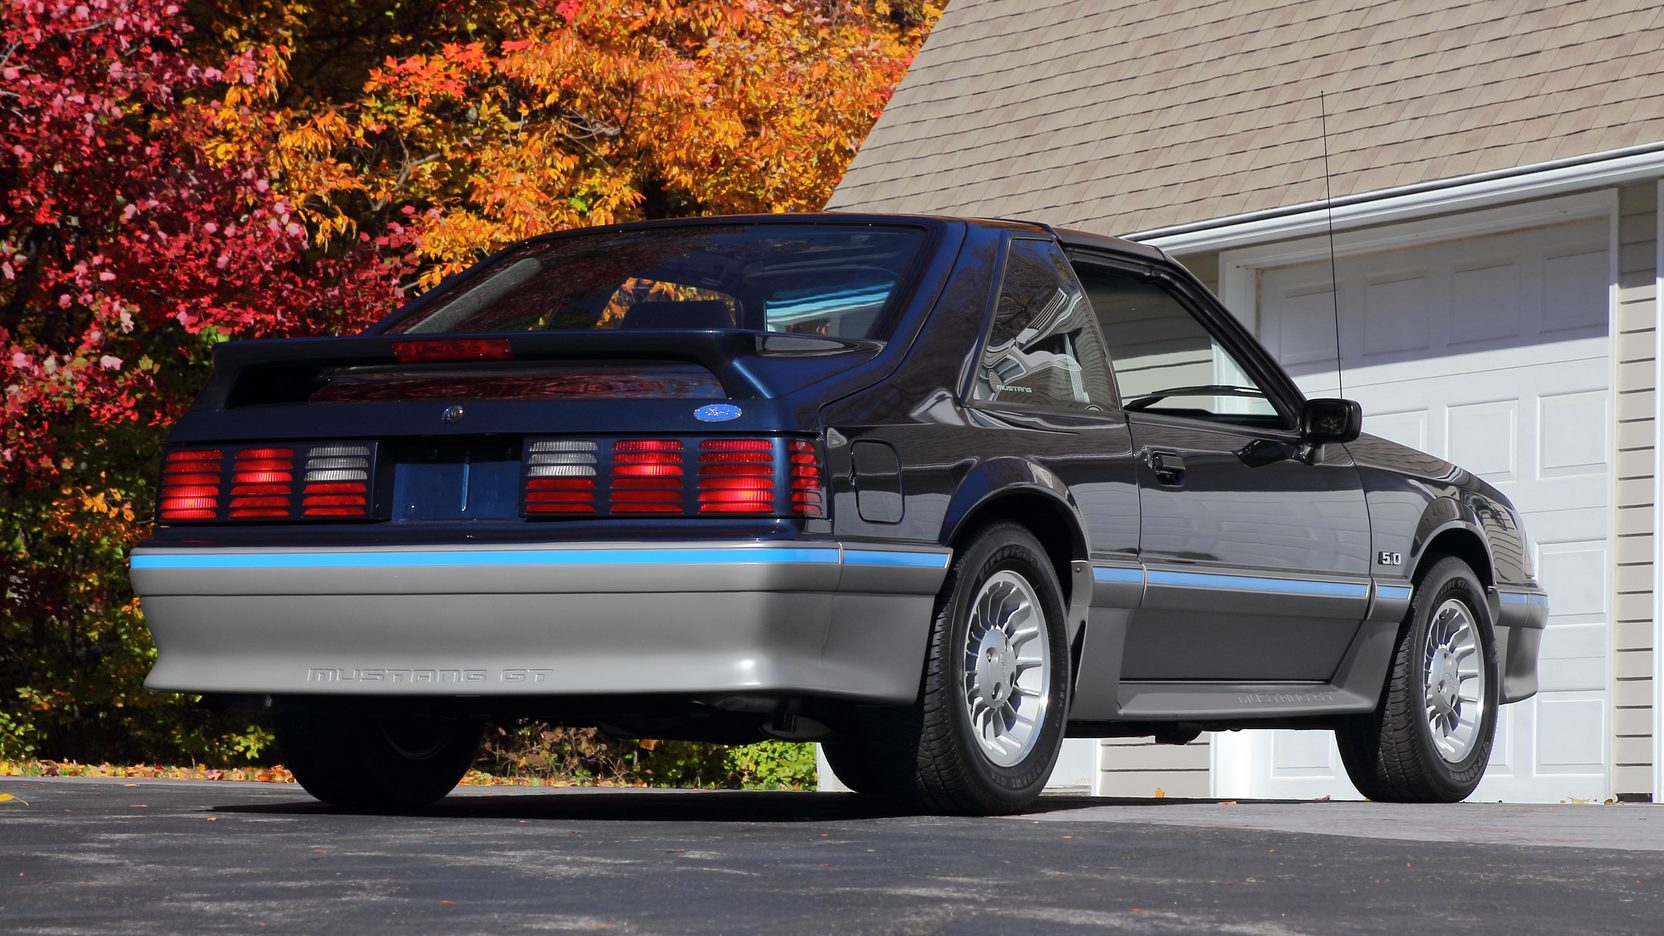 1988 Ford Mustang GT rear 3/4